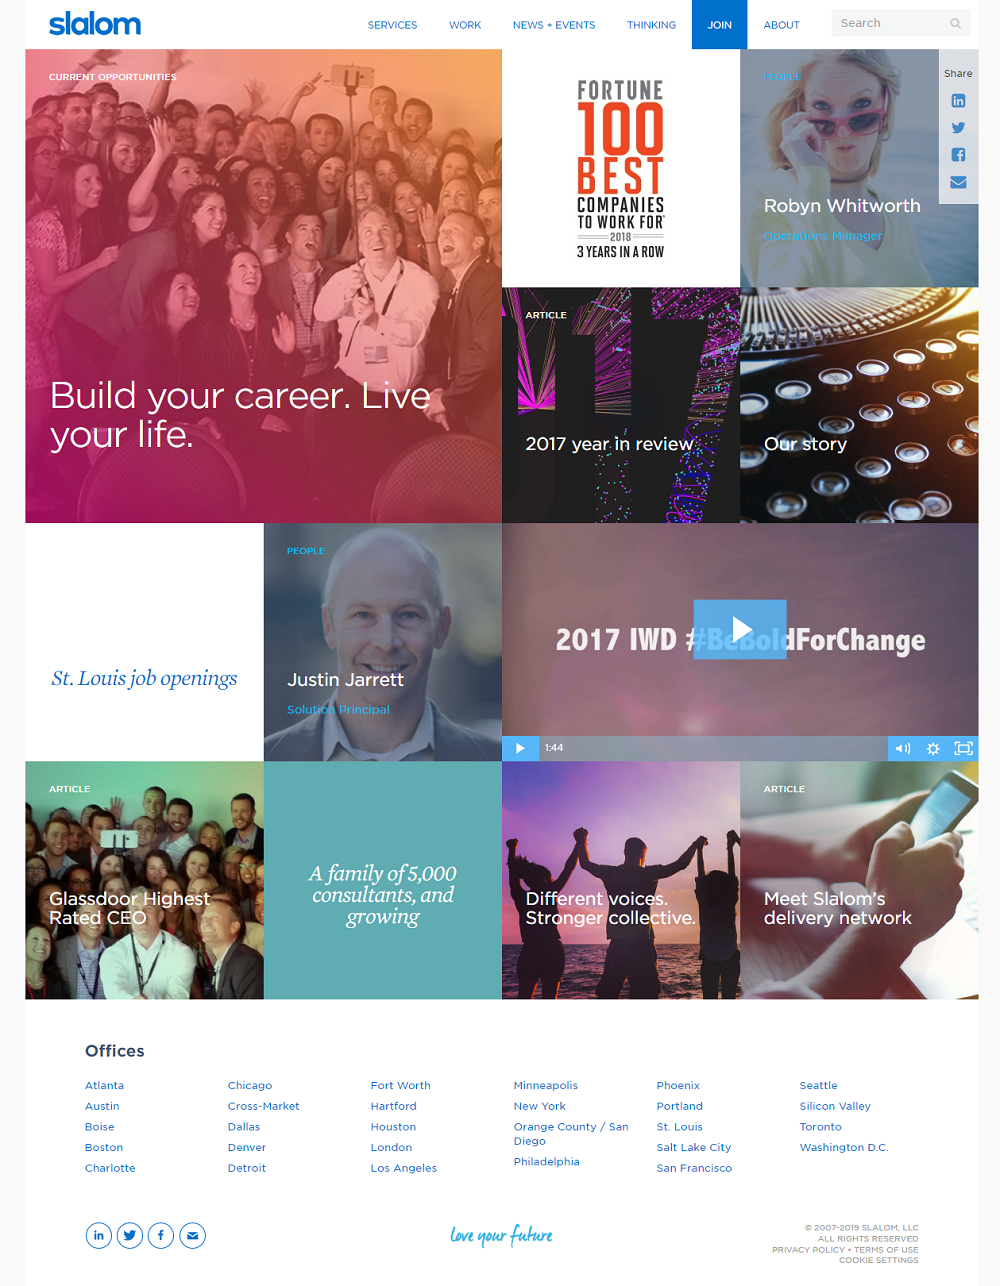 15 Best Career Pages In 2019 Ongig Blog